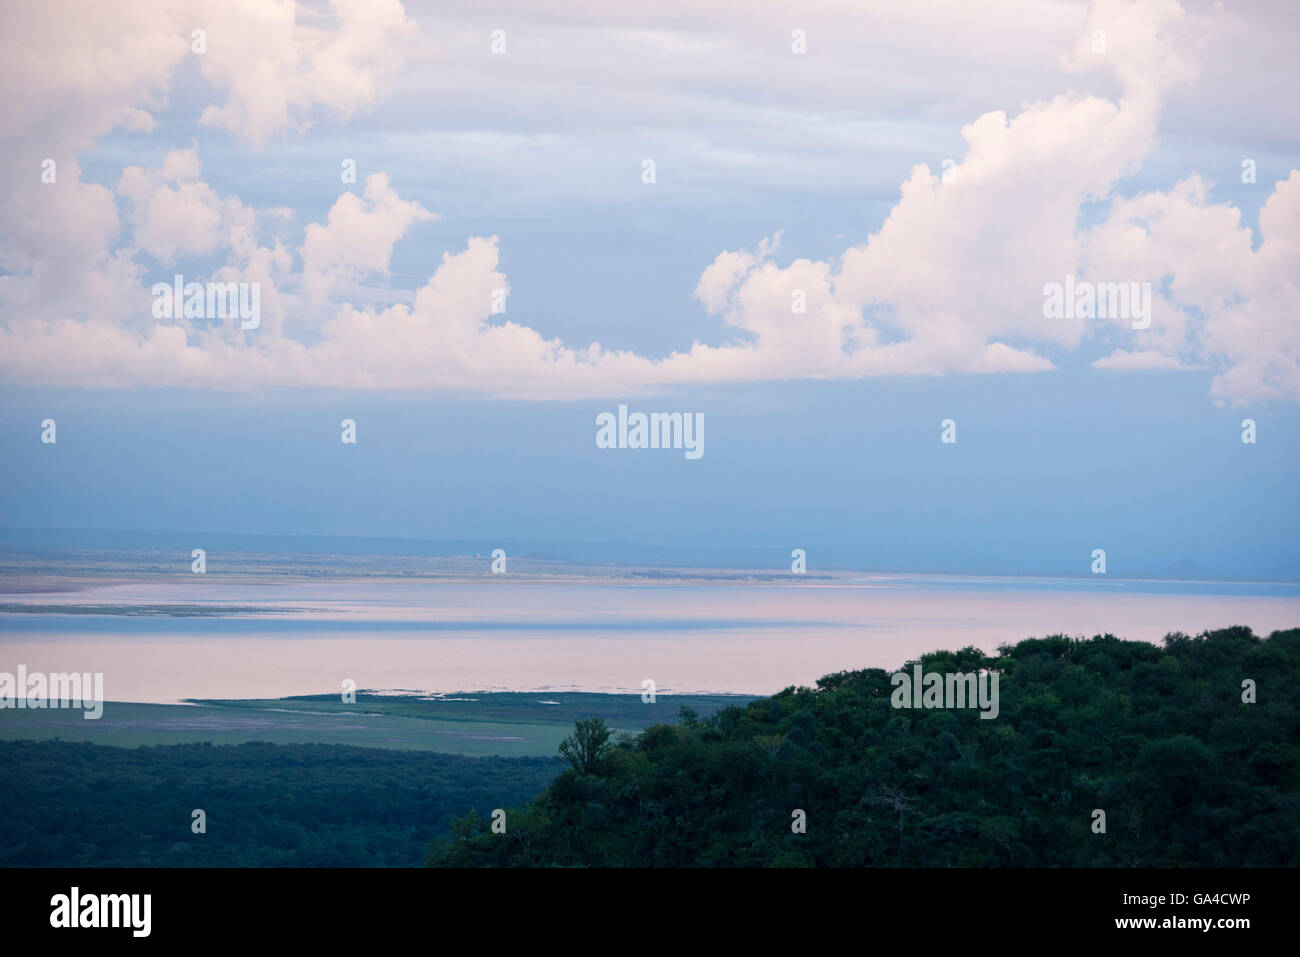 View over Lake Manyara National Park, Tanzania - Stock Image